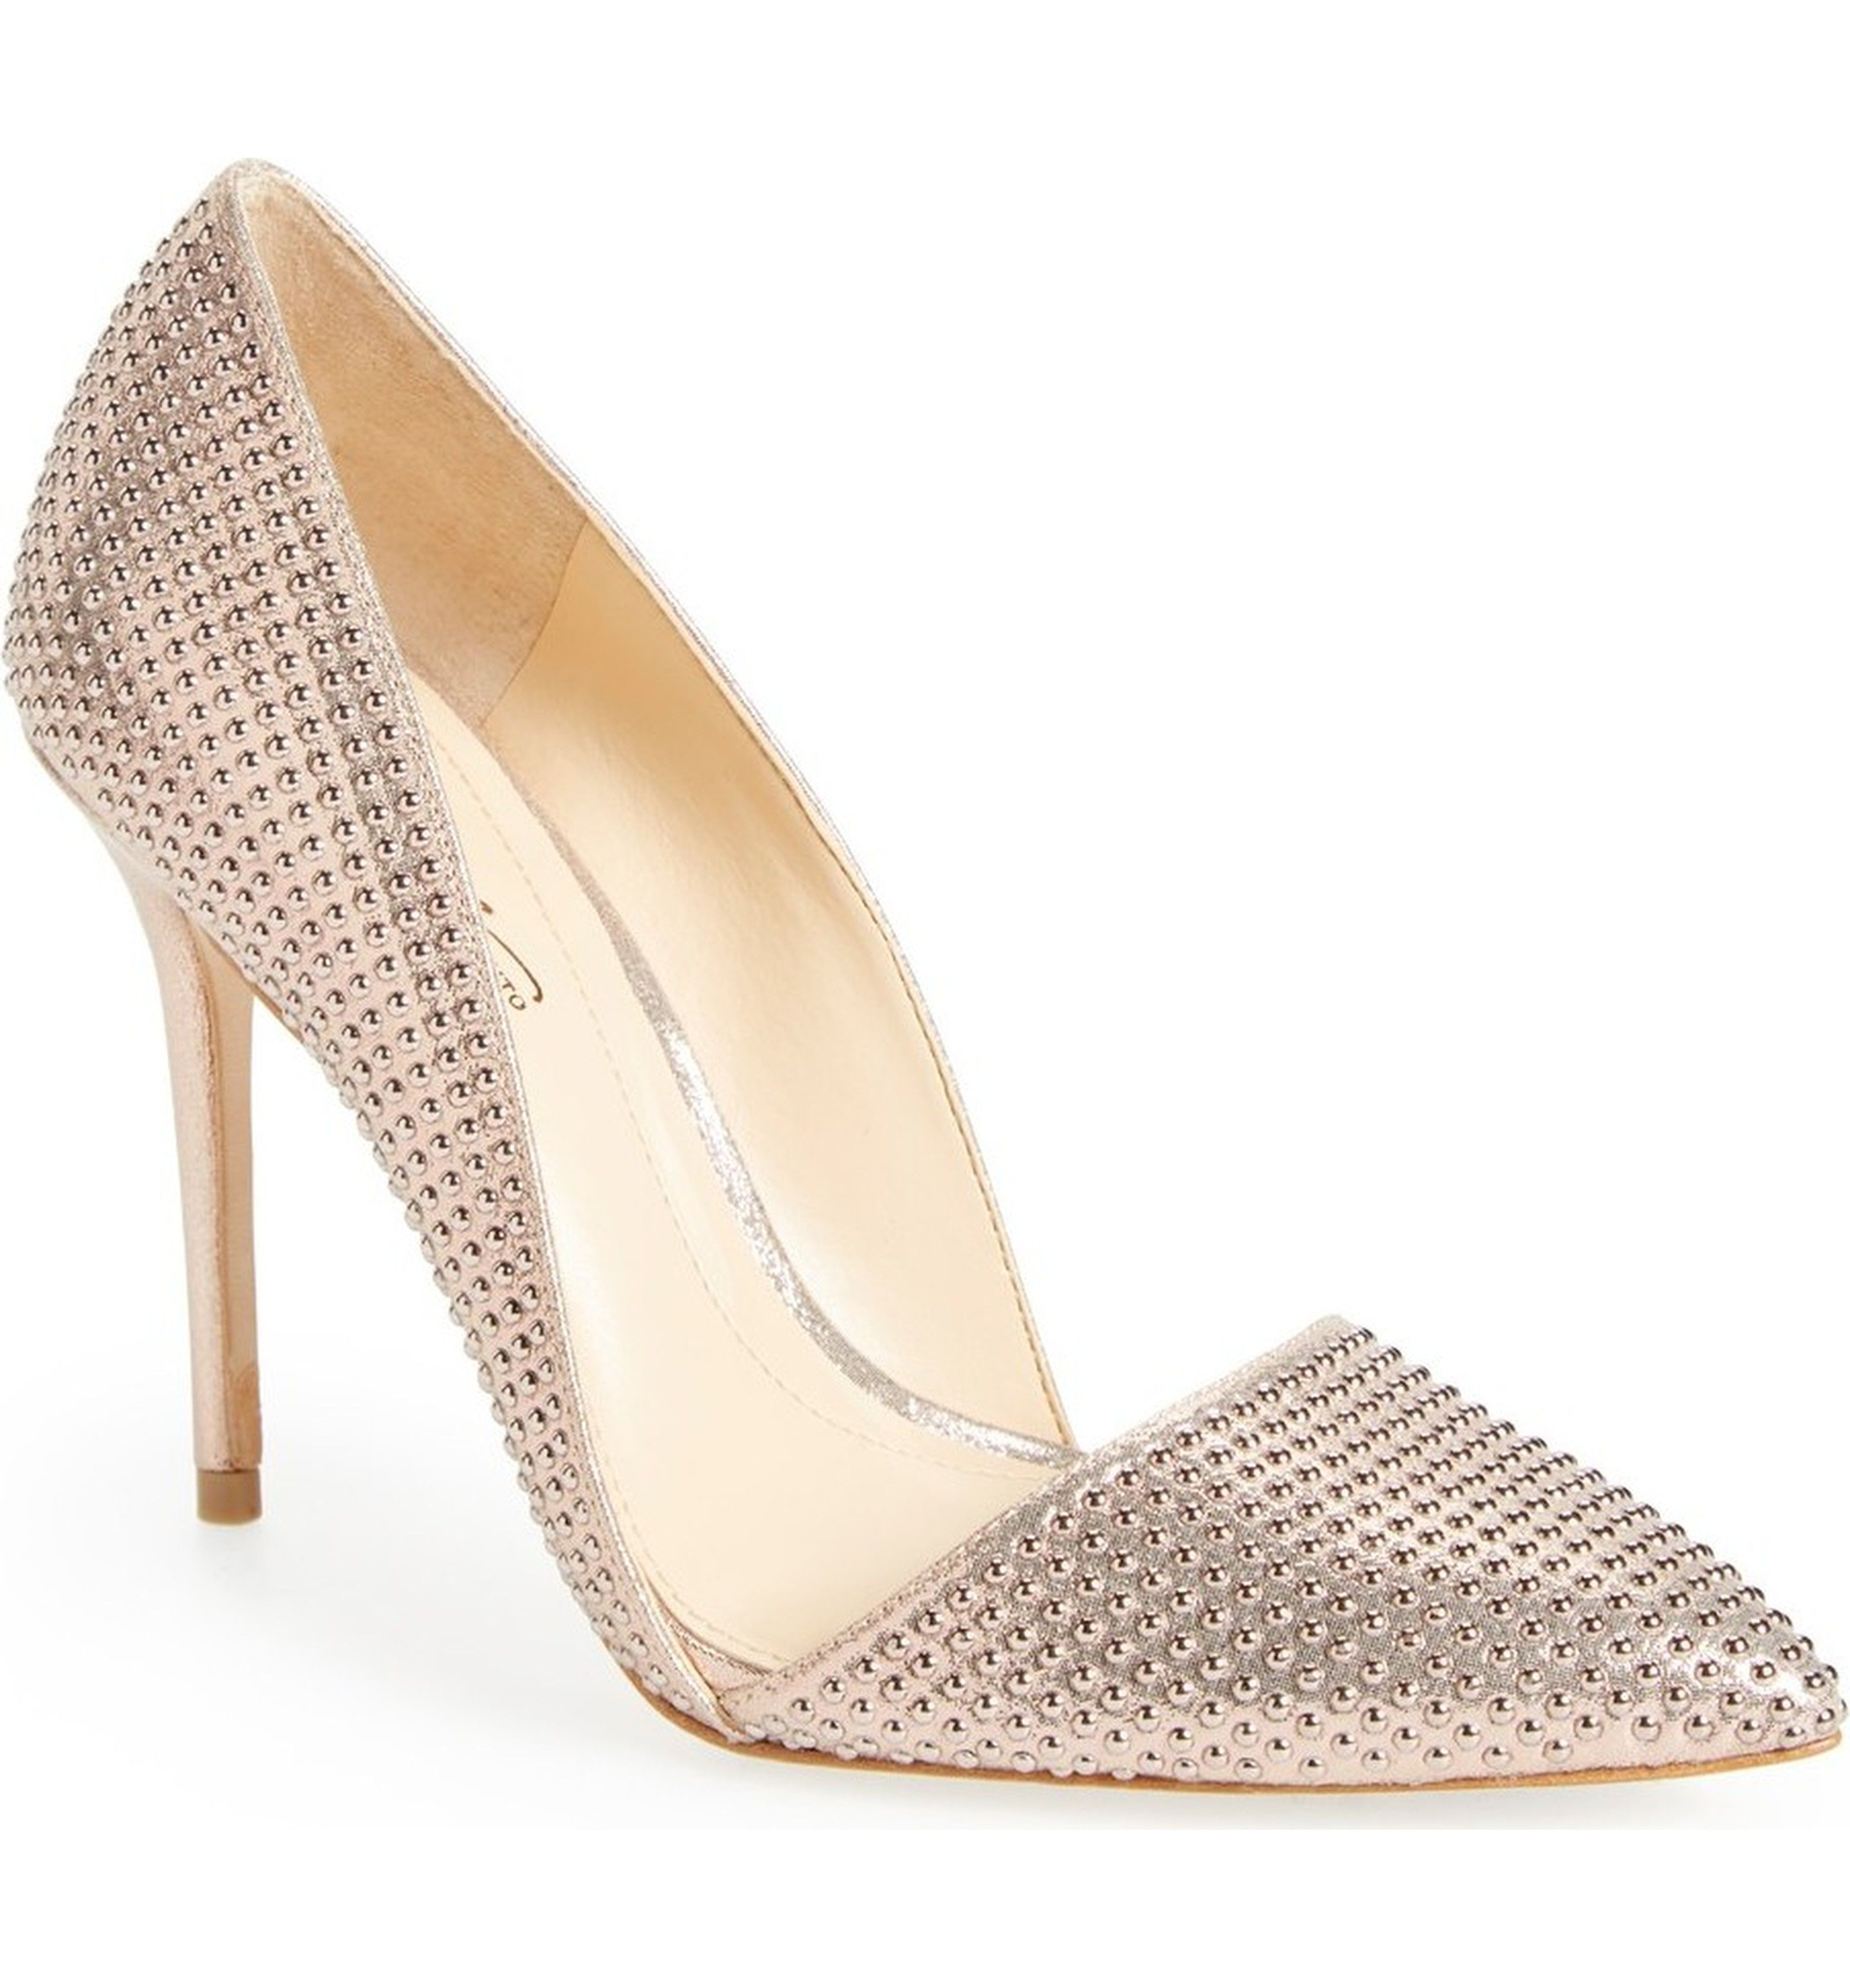 Imagine Vince Camuto 'Ossie' d'Orsay Pump (Women) $79.96